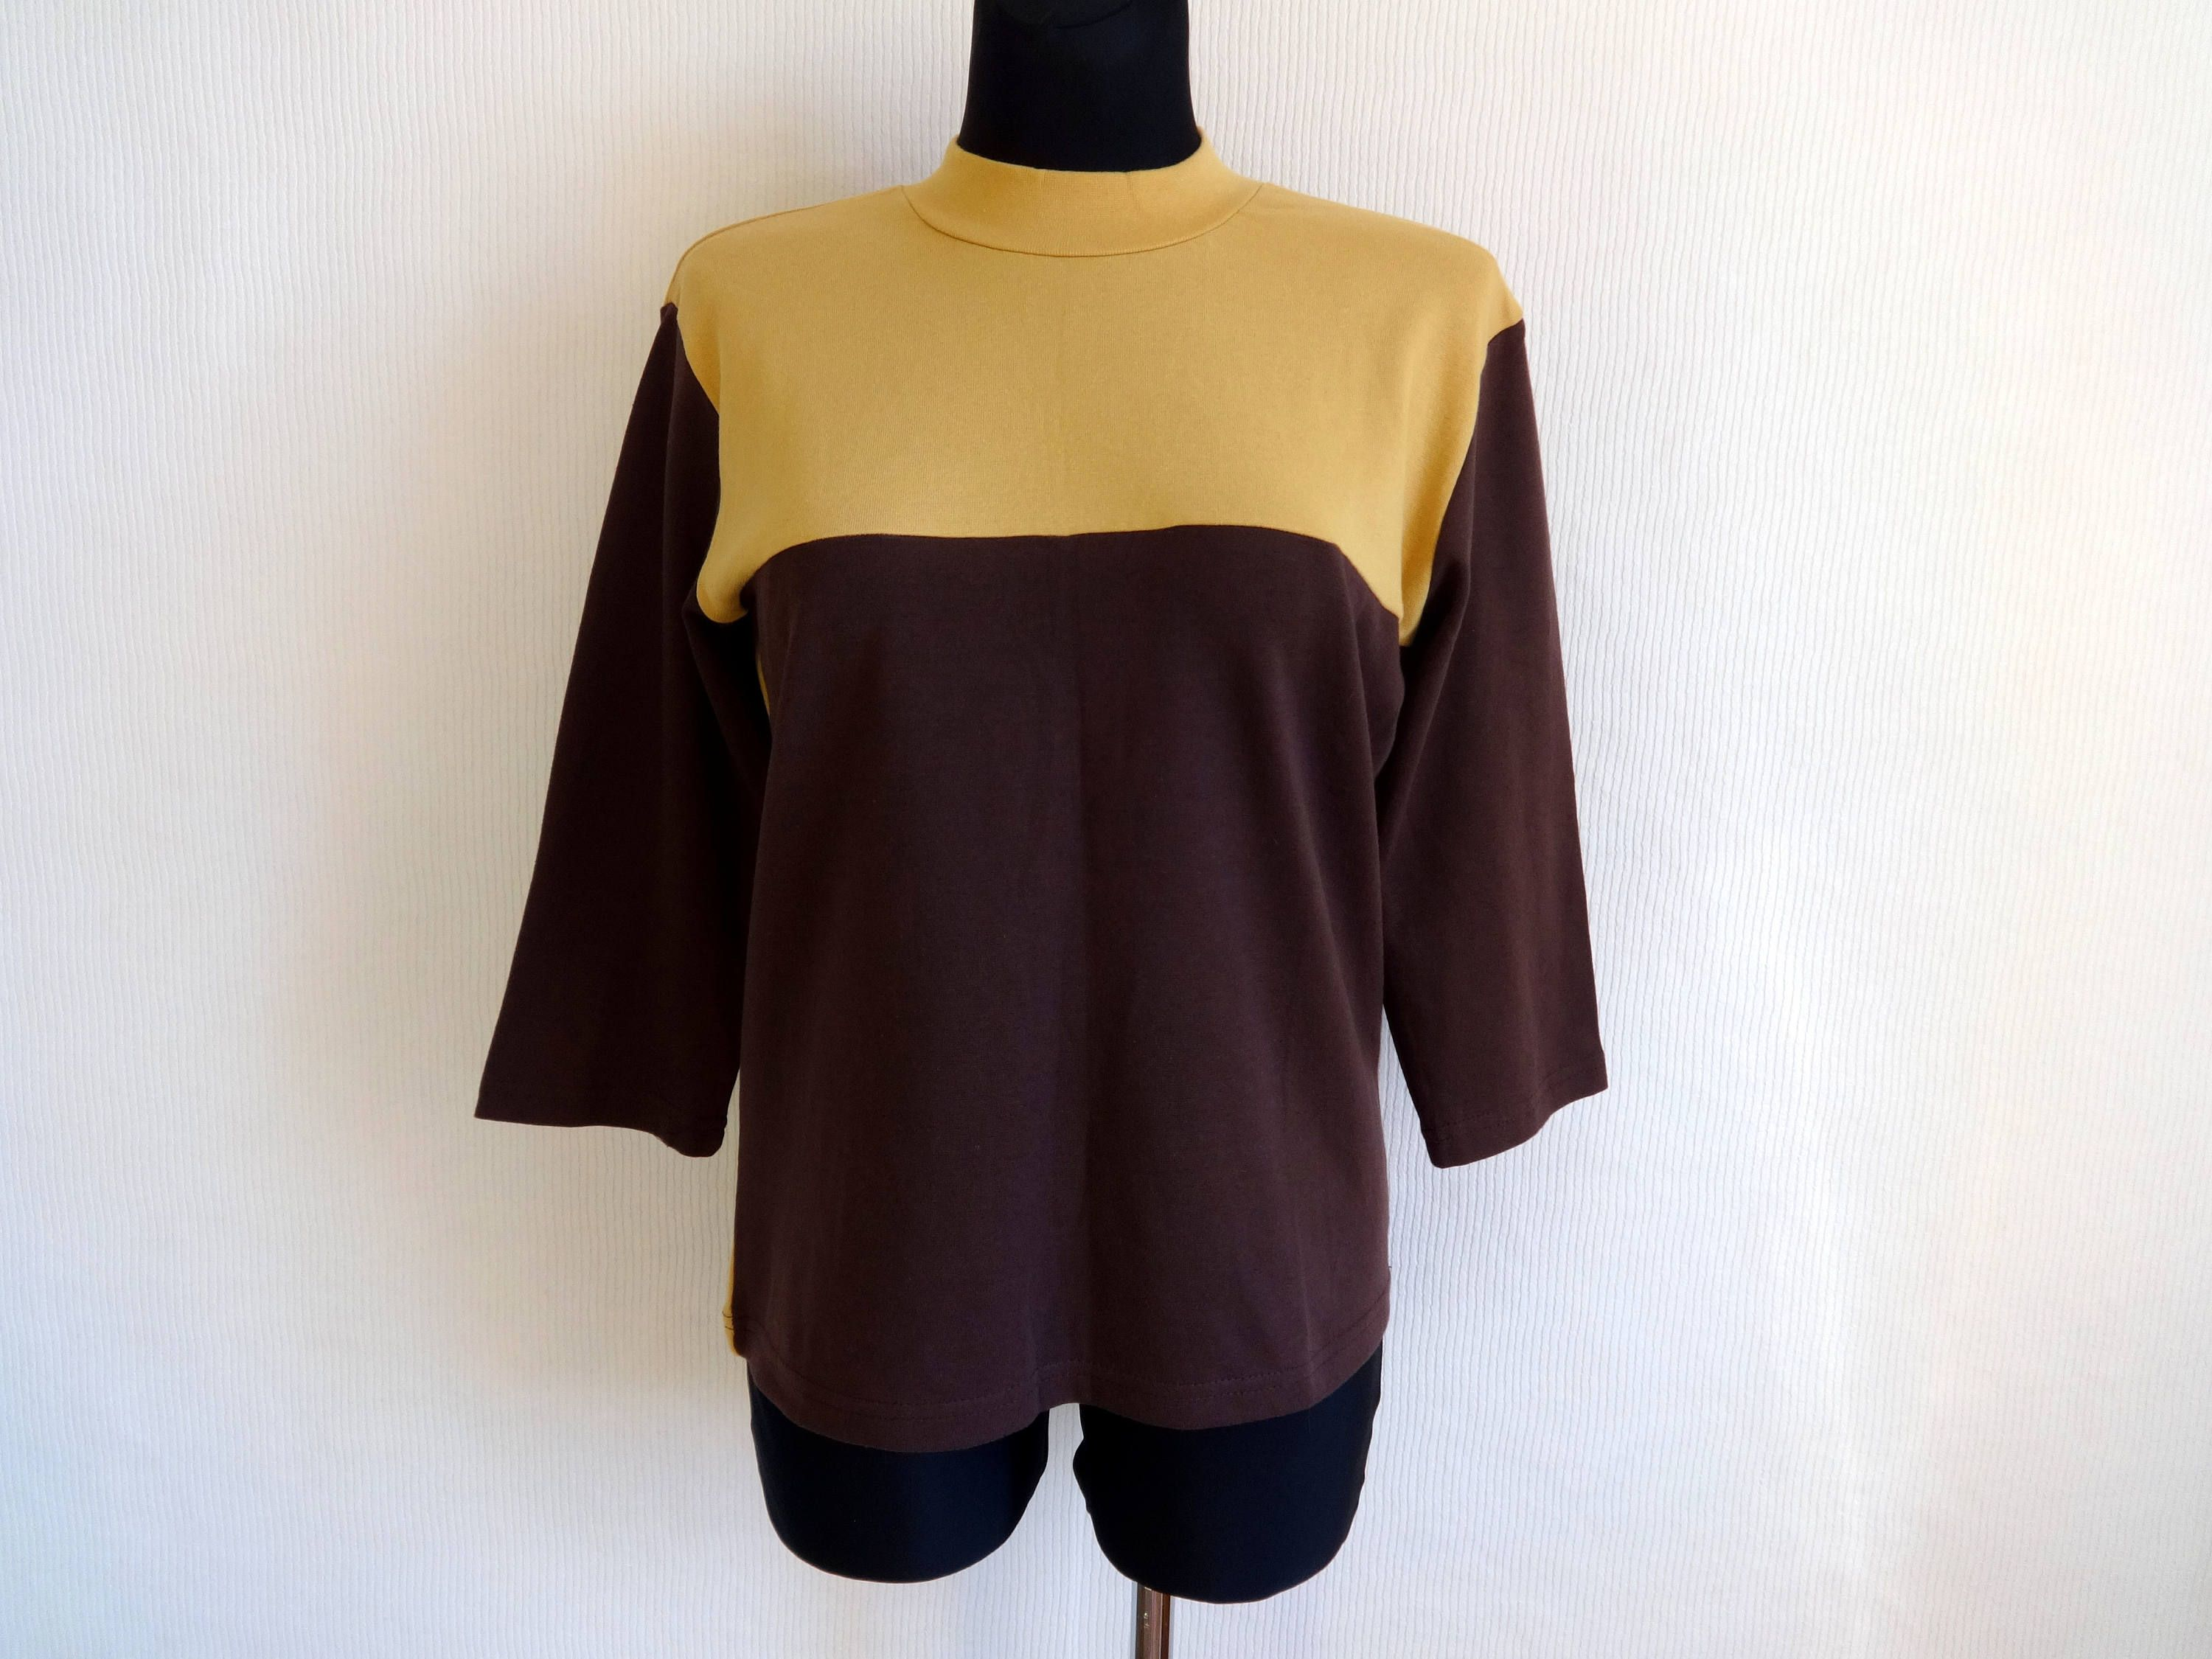 9fb90f30a62a Vintage Brown & Yellow Cotton Jersey Shirt 25 Print On The Back 3/4 Sleeve  Shirt Unisex Clothing XL Sweatshirt Free Time Clothing by Vintageby2sisters  on ...